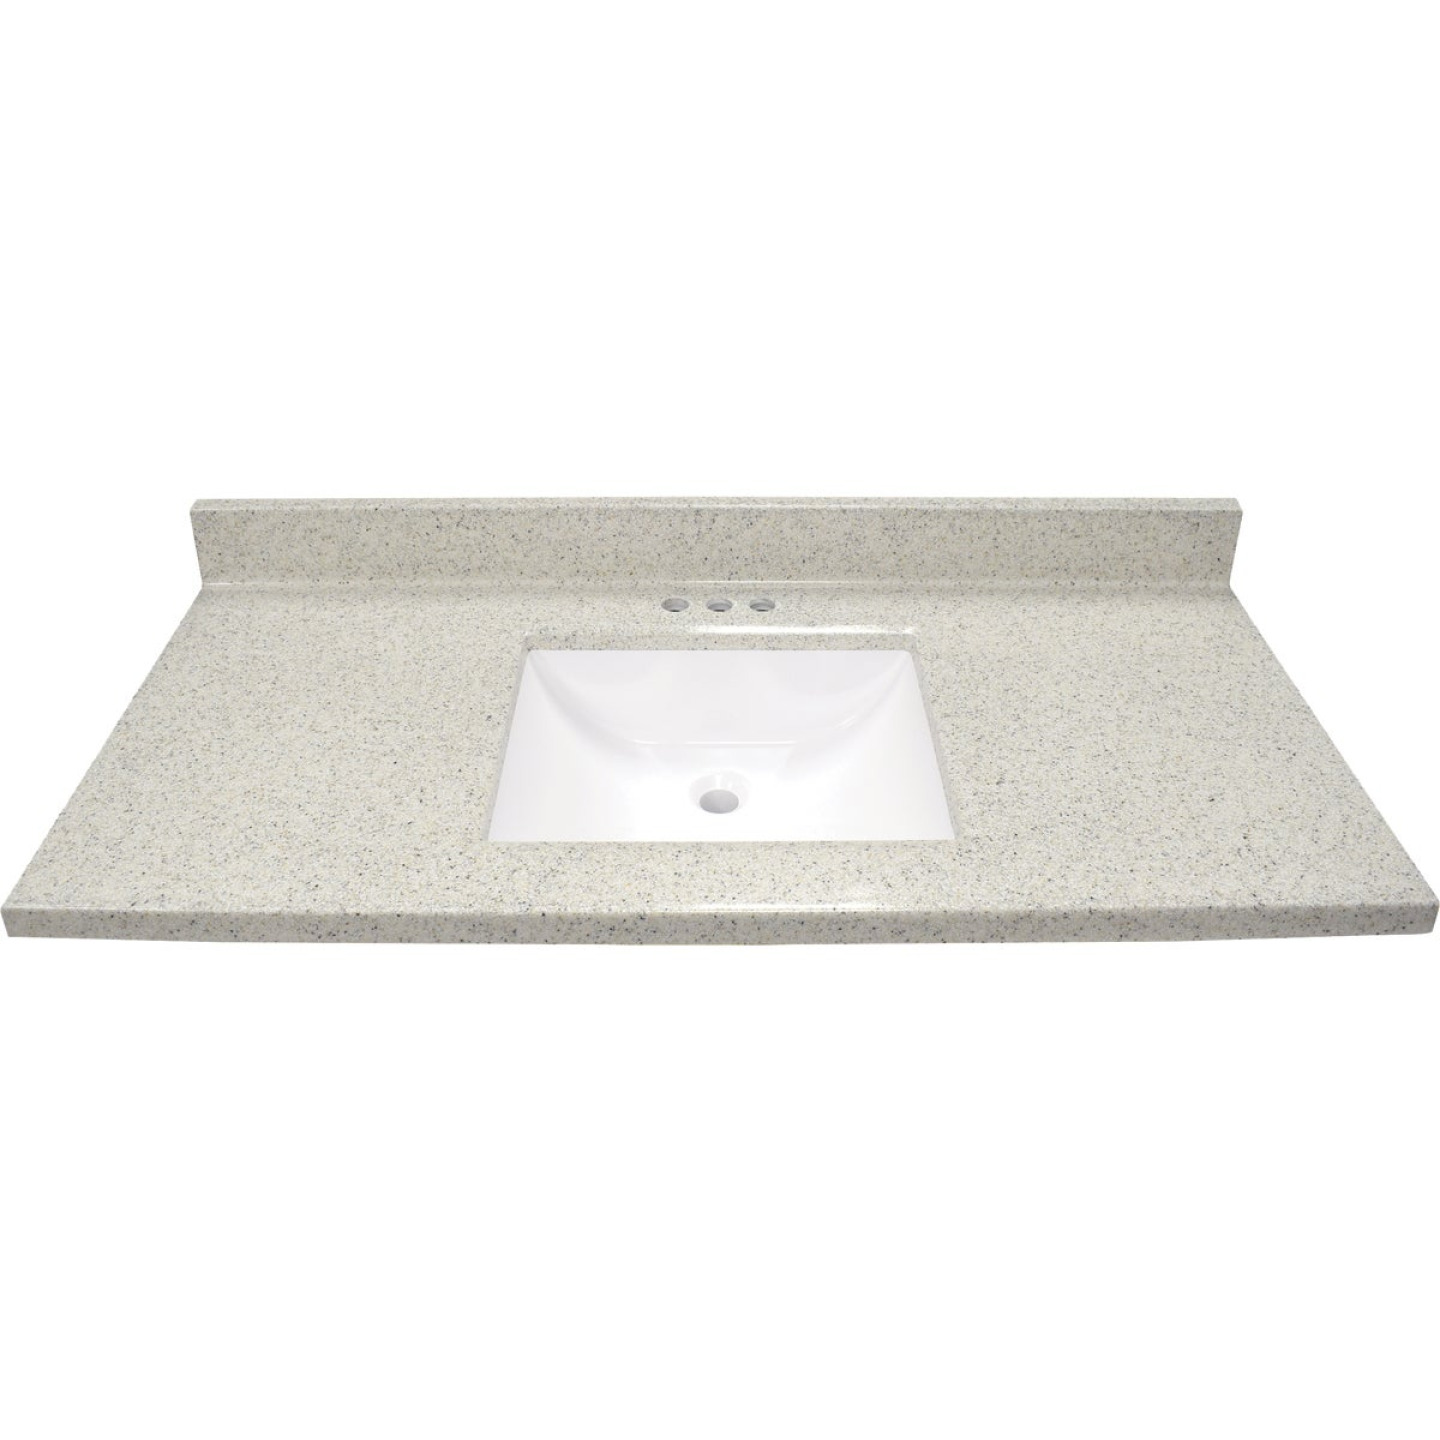 Modular Vanity Tops 49 In. W x 22 In. D Dune Cultured Marble Vanity Top with Rectangular Wave Bowl Image 2